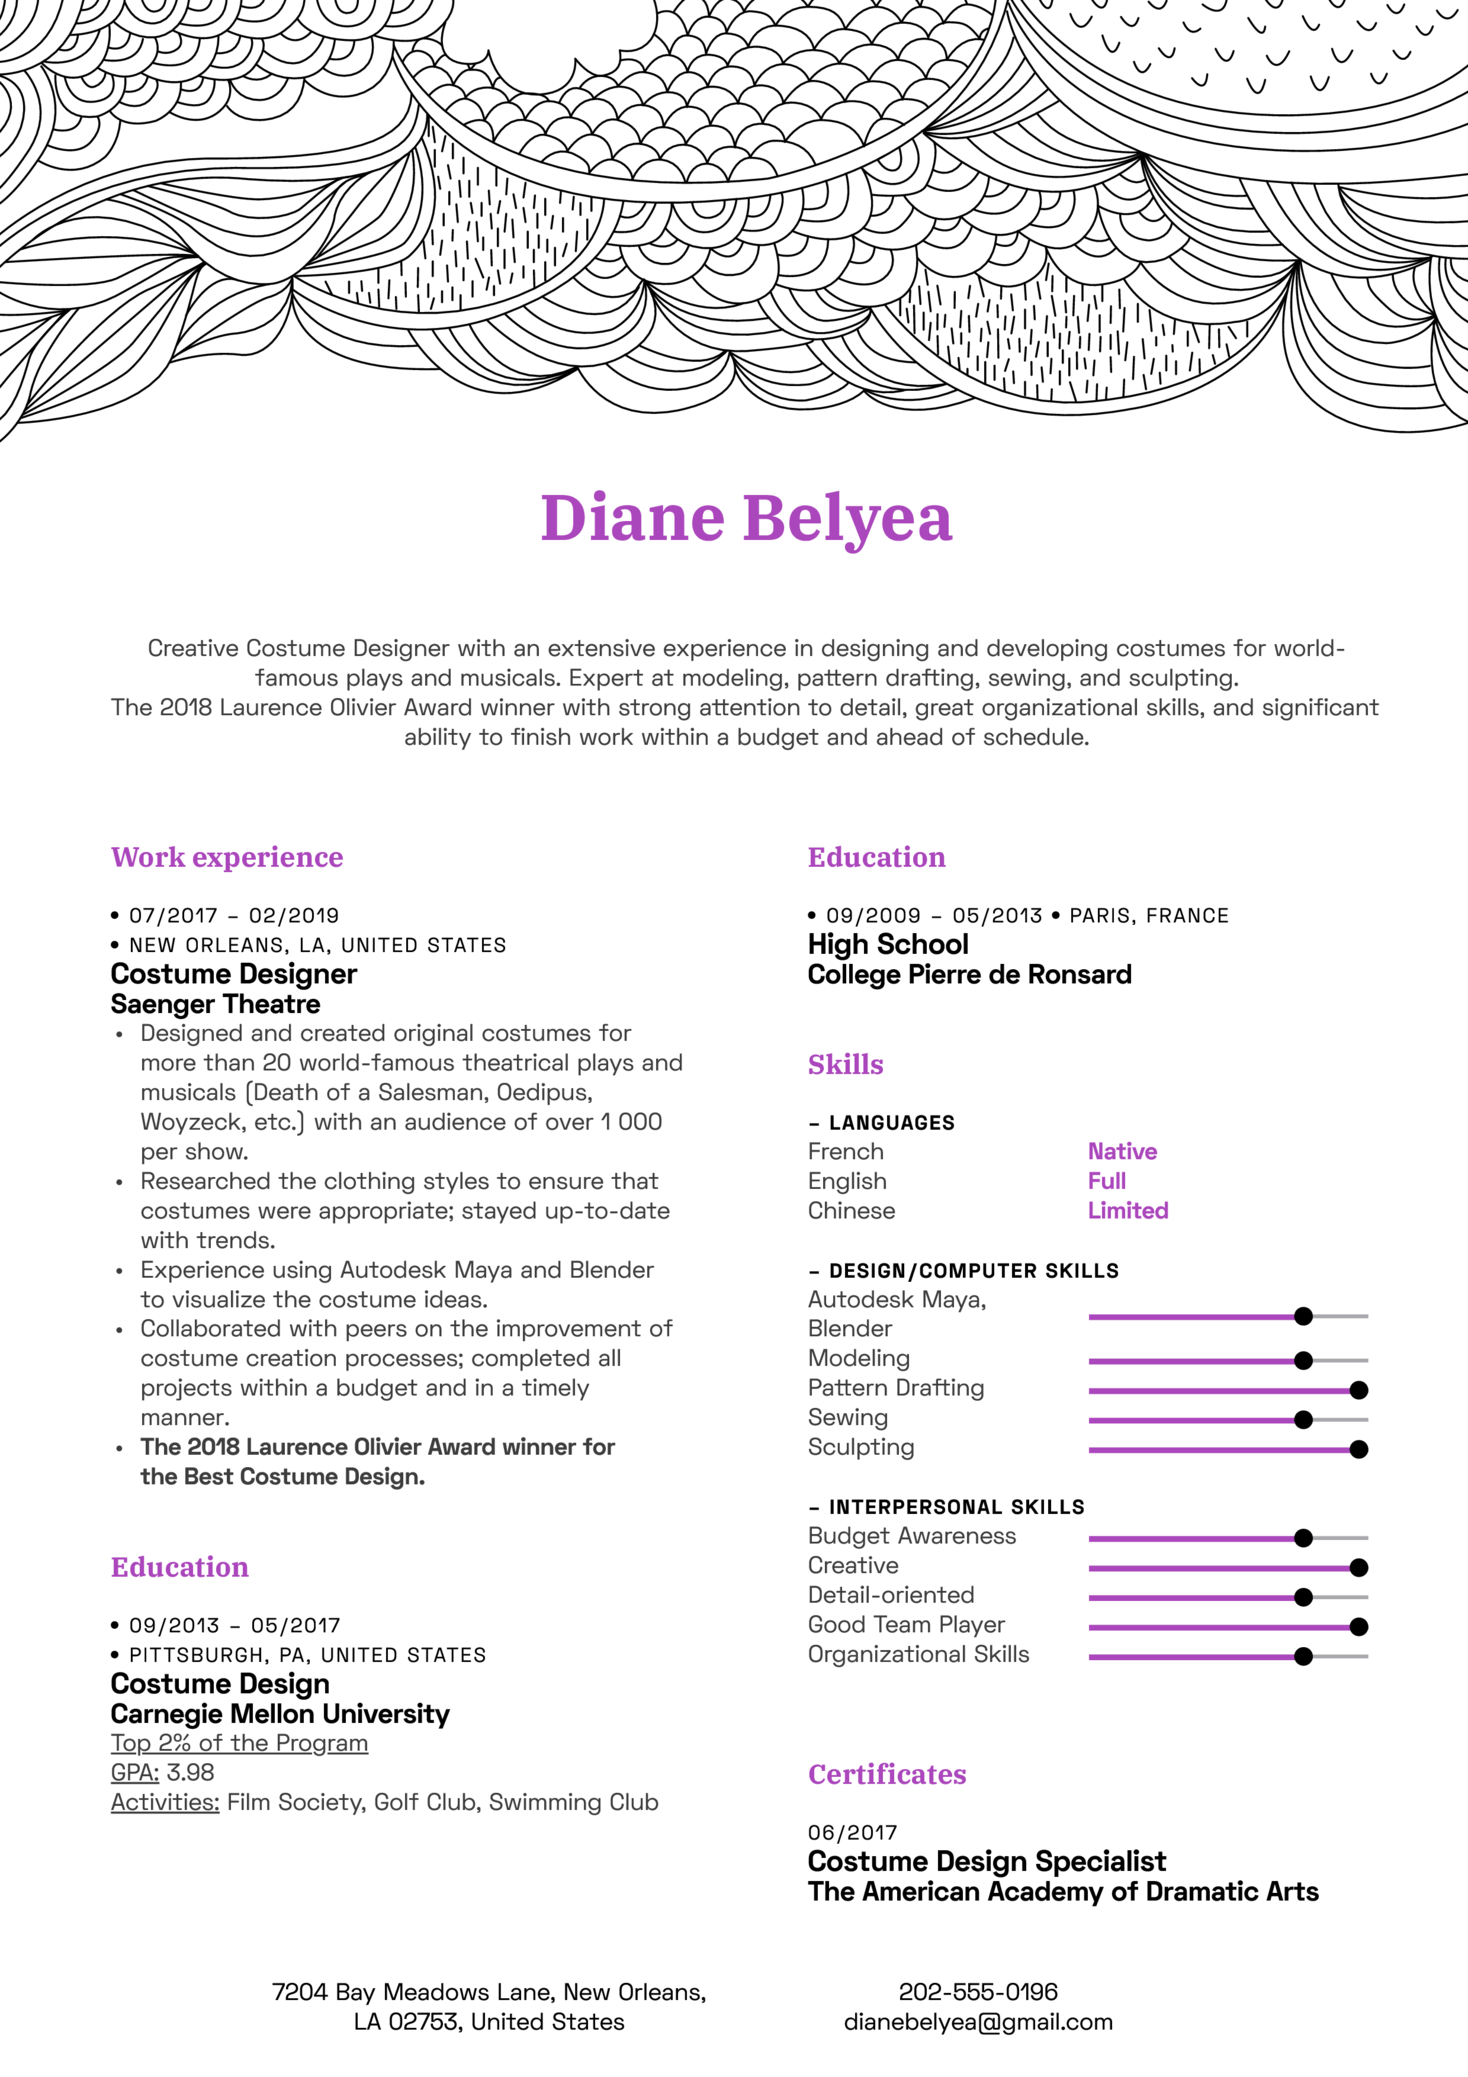 sample resume for costume designer